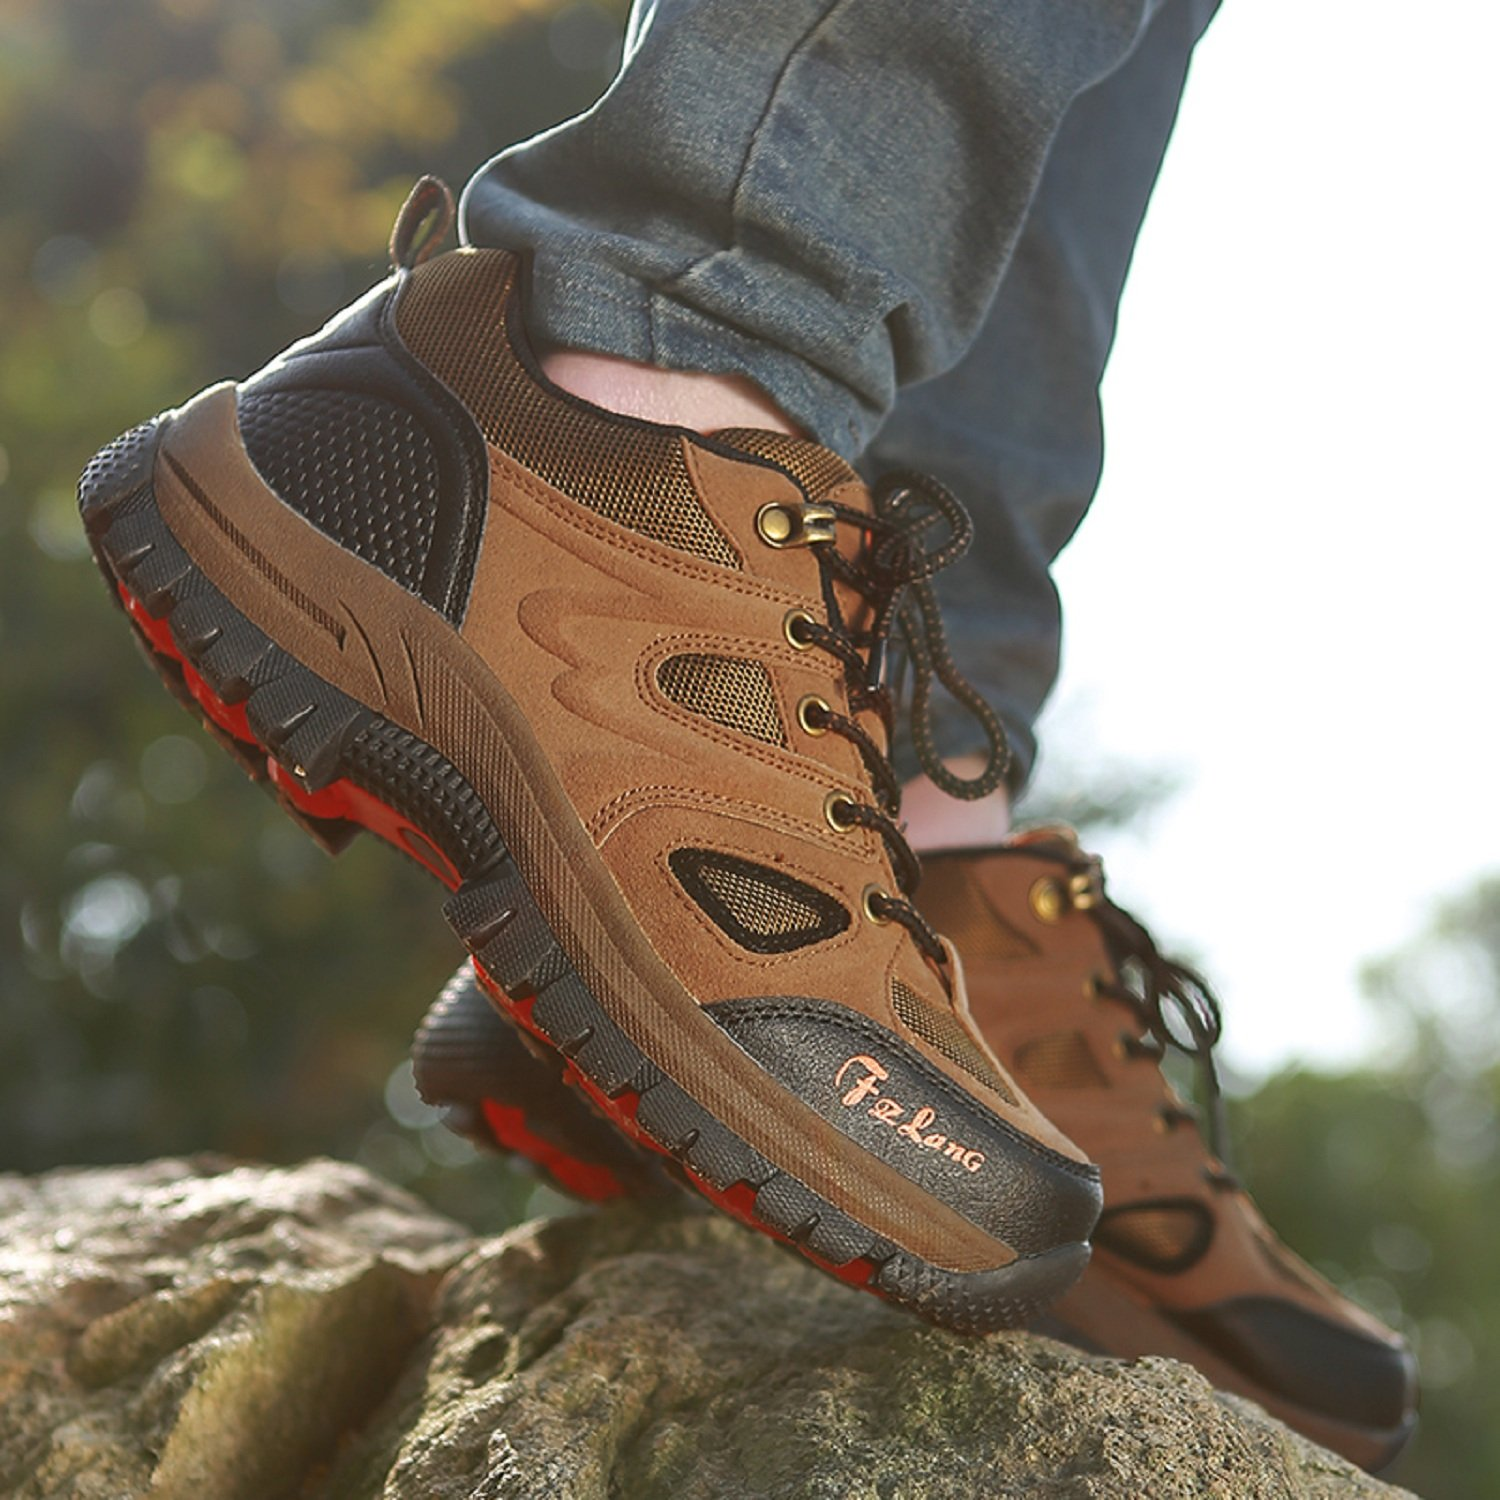 T-Gold 2017 Men's Waterproof Low Hiking Shoe Outdoor Breathable Climing Trekking Sports Summer by T-Gold (Image #6)